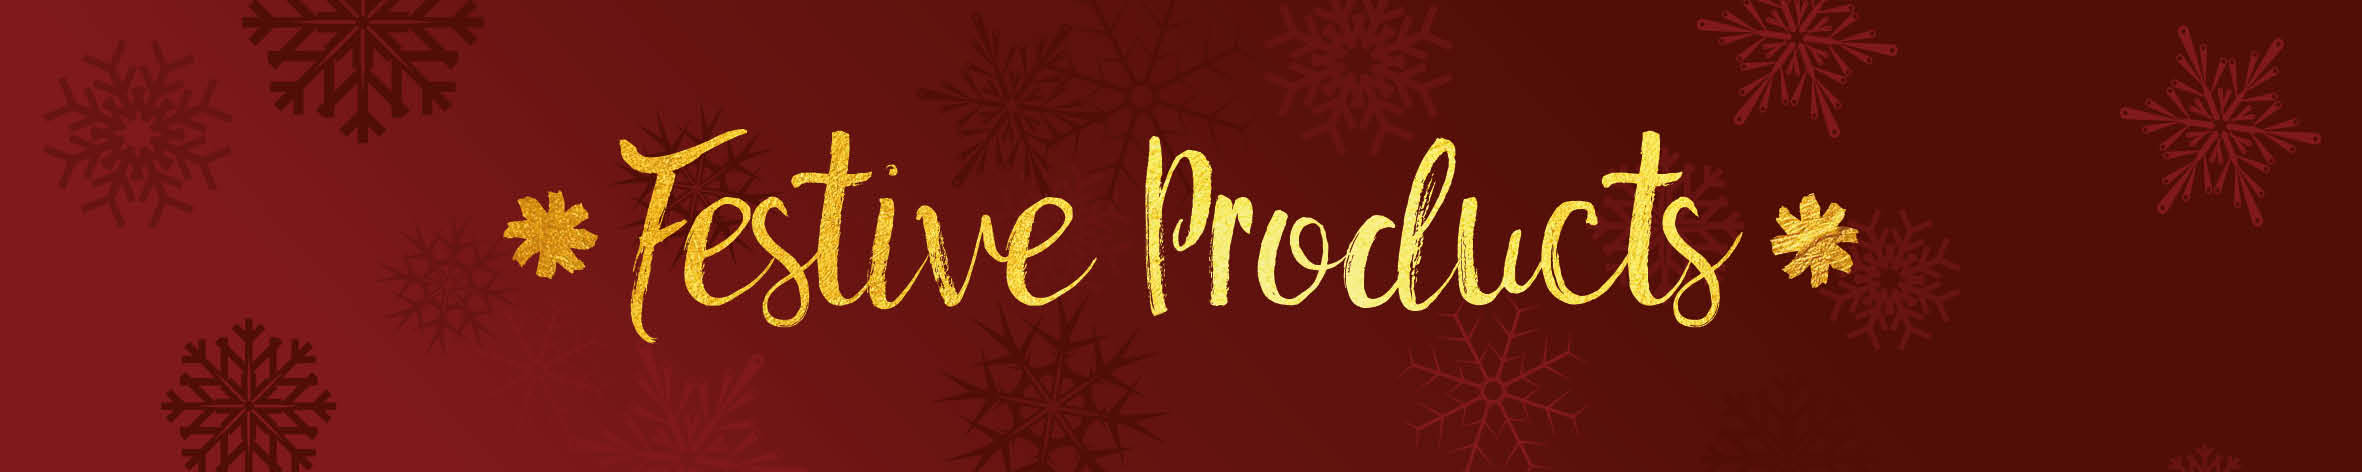 Christmas Product Page Banner 19